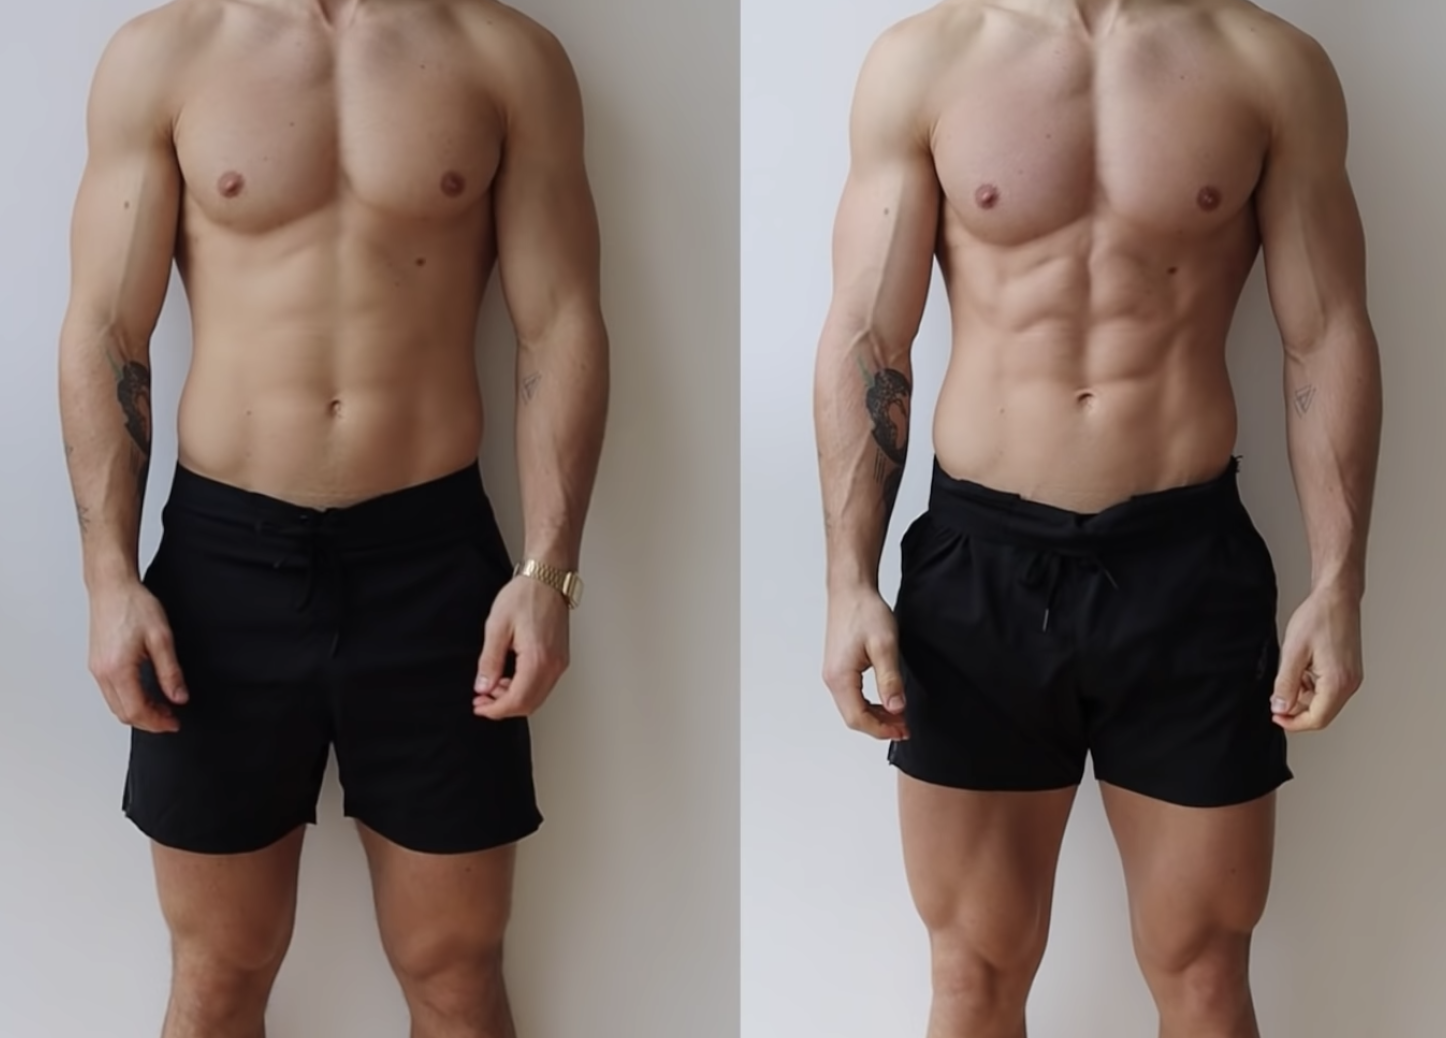 Personal Trainer Joe Delaney Went From Lean to Shredded in 14 Days